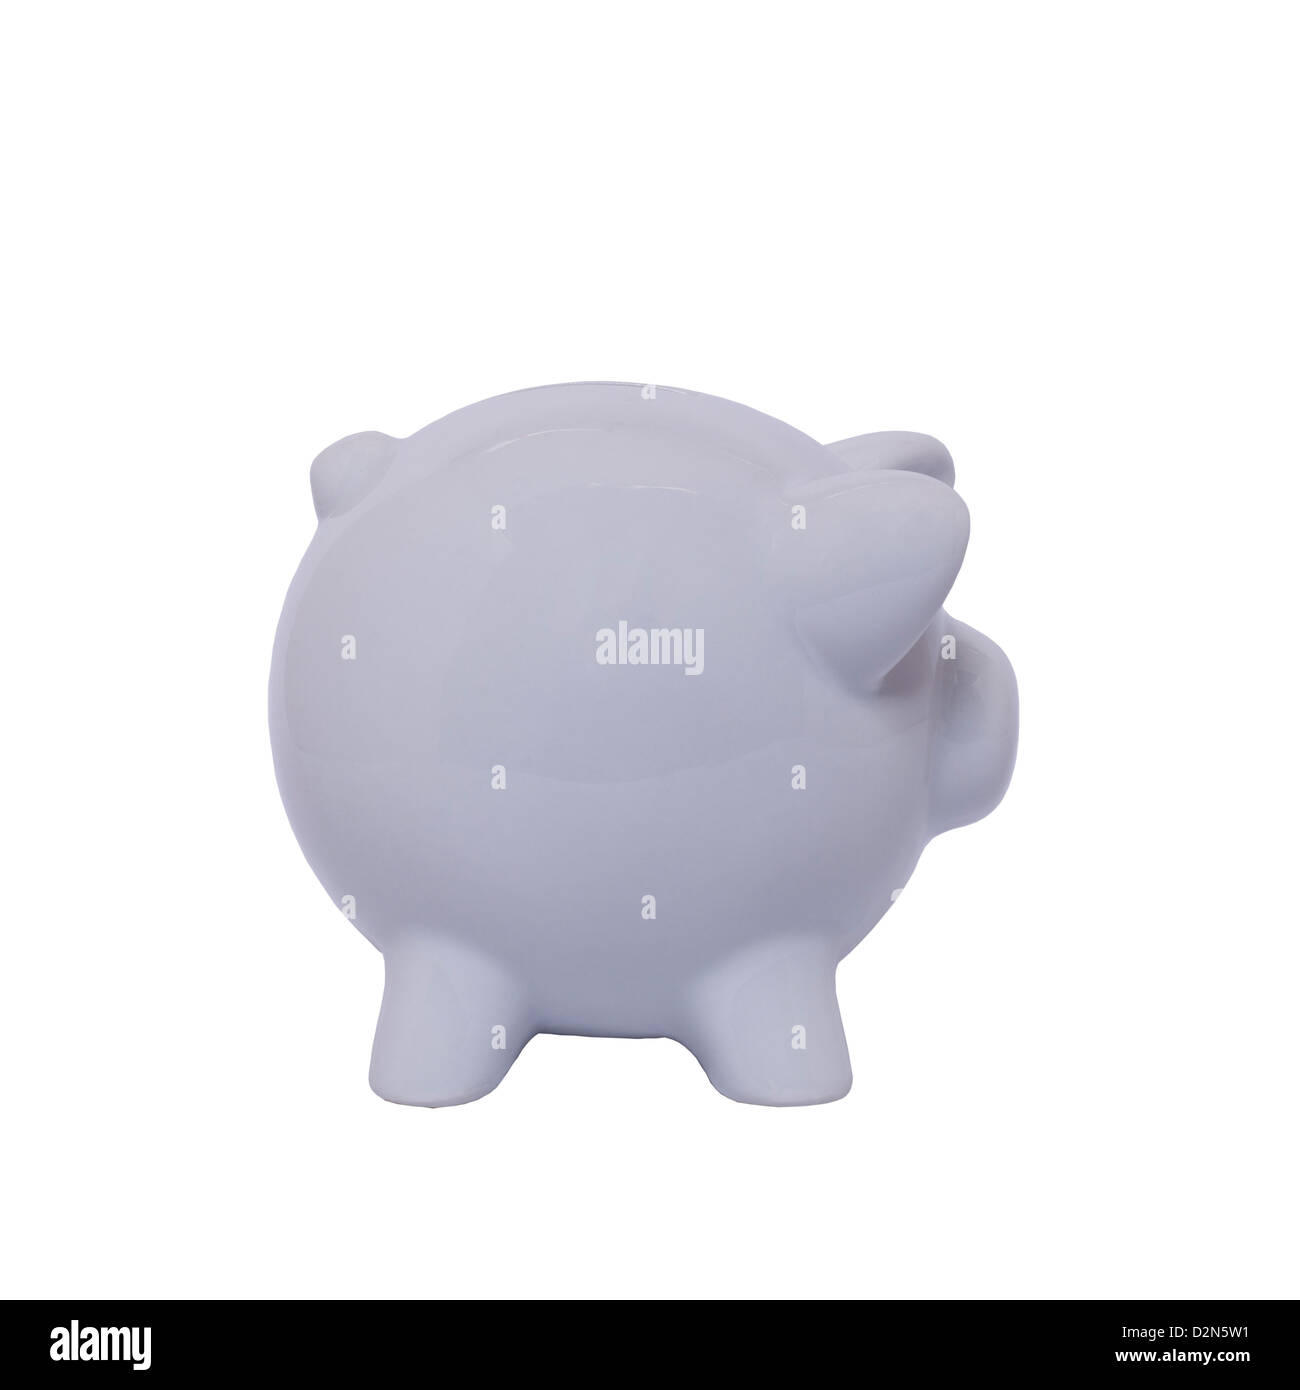 A white piggy bank on a white background - Stock Image